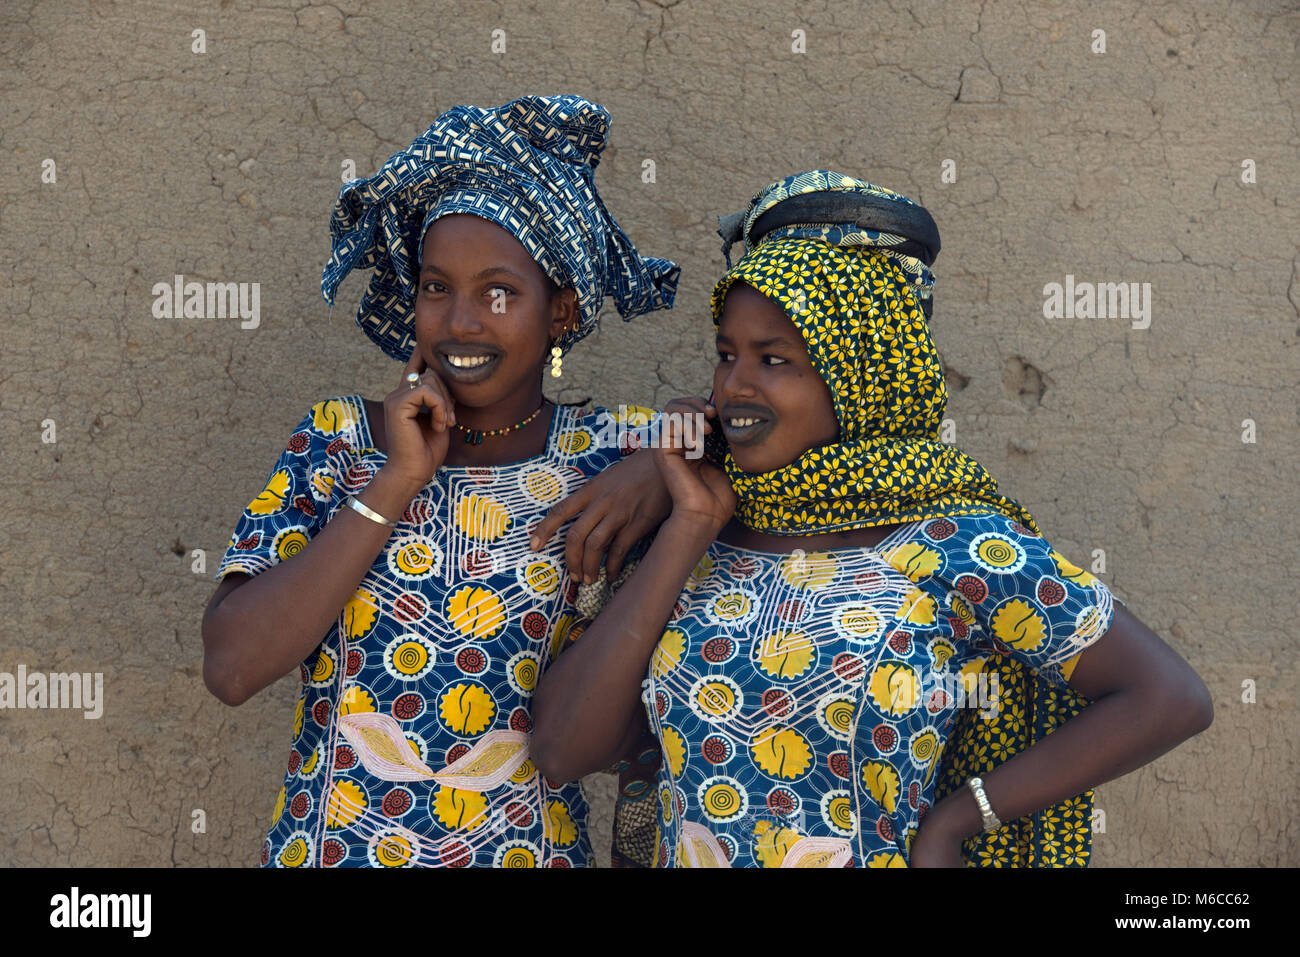 An ethnic, indigenous Fulani woman on her cell, mobile phone. Mali, West Africa. - Stock Image